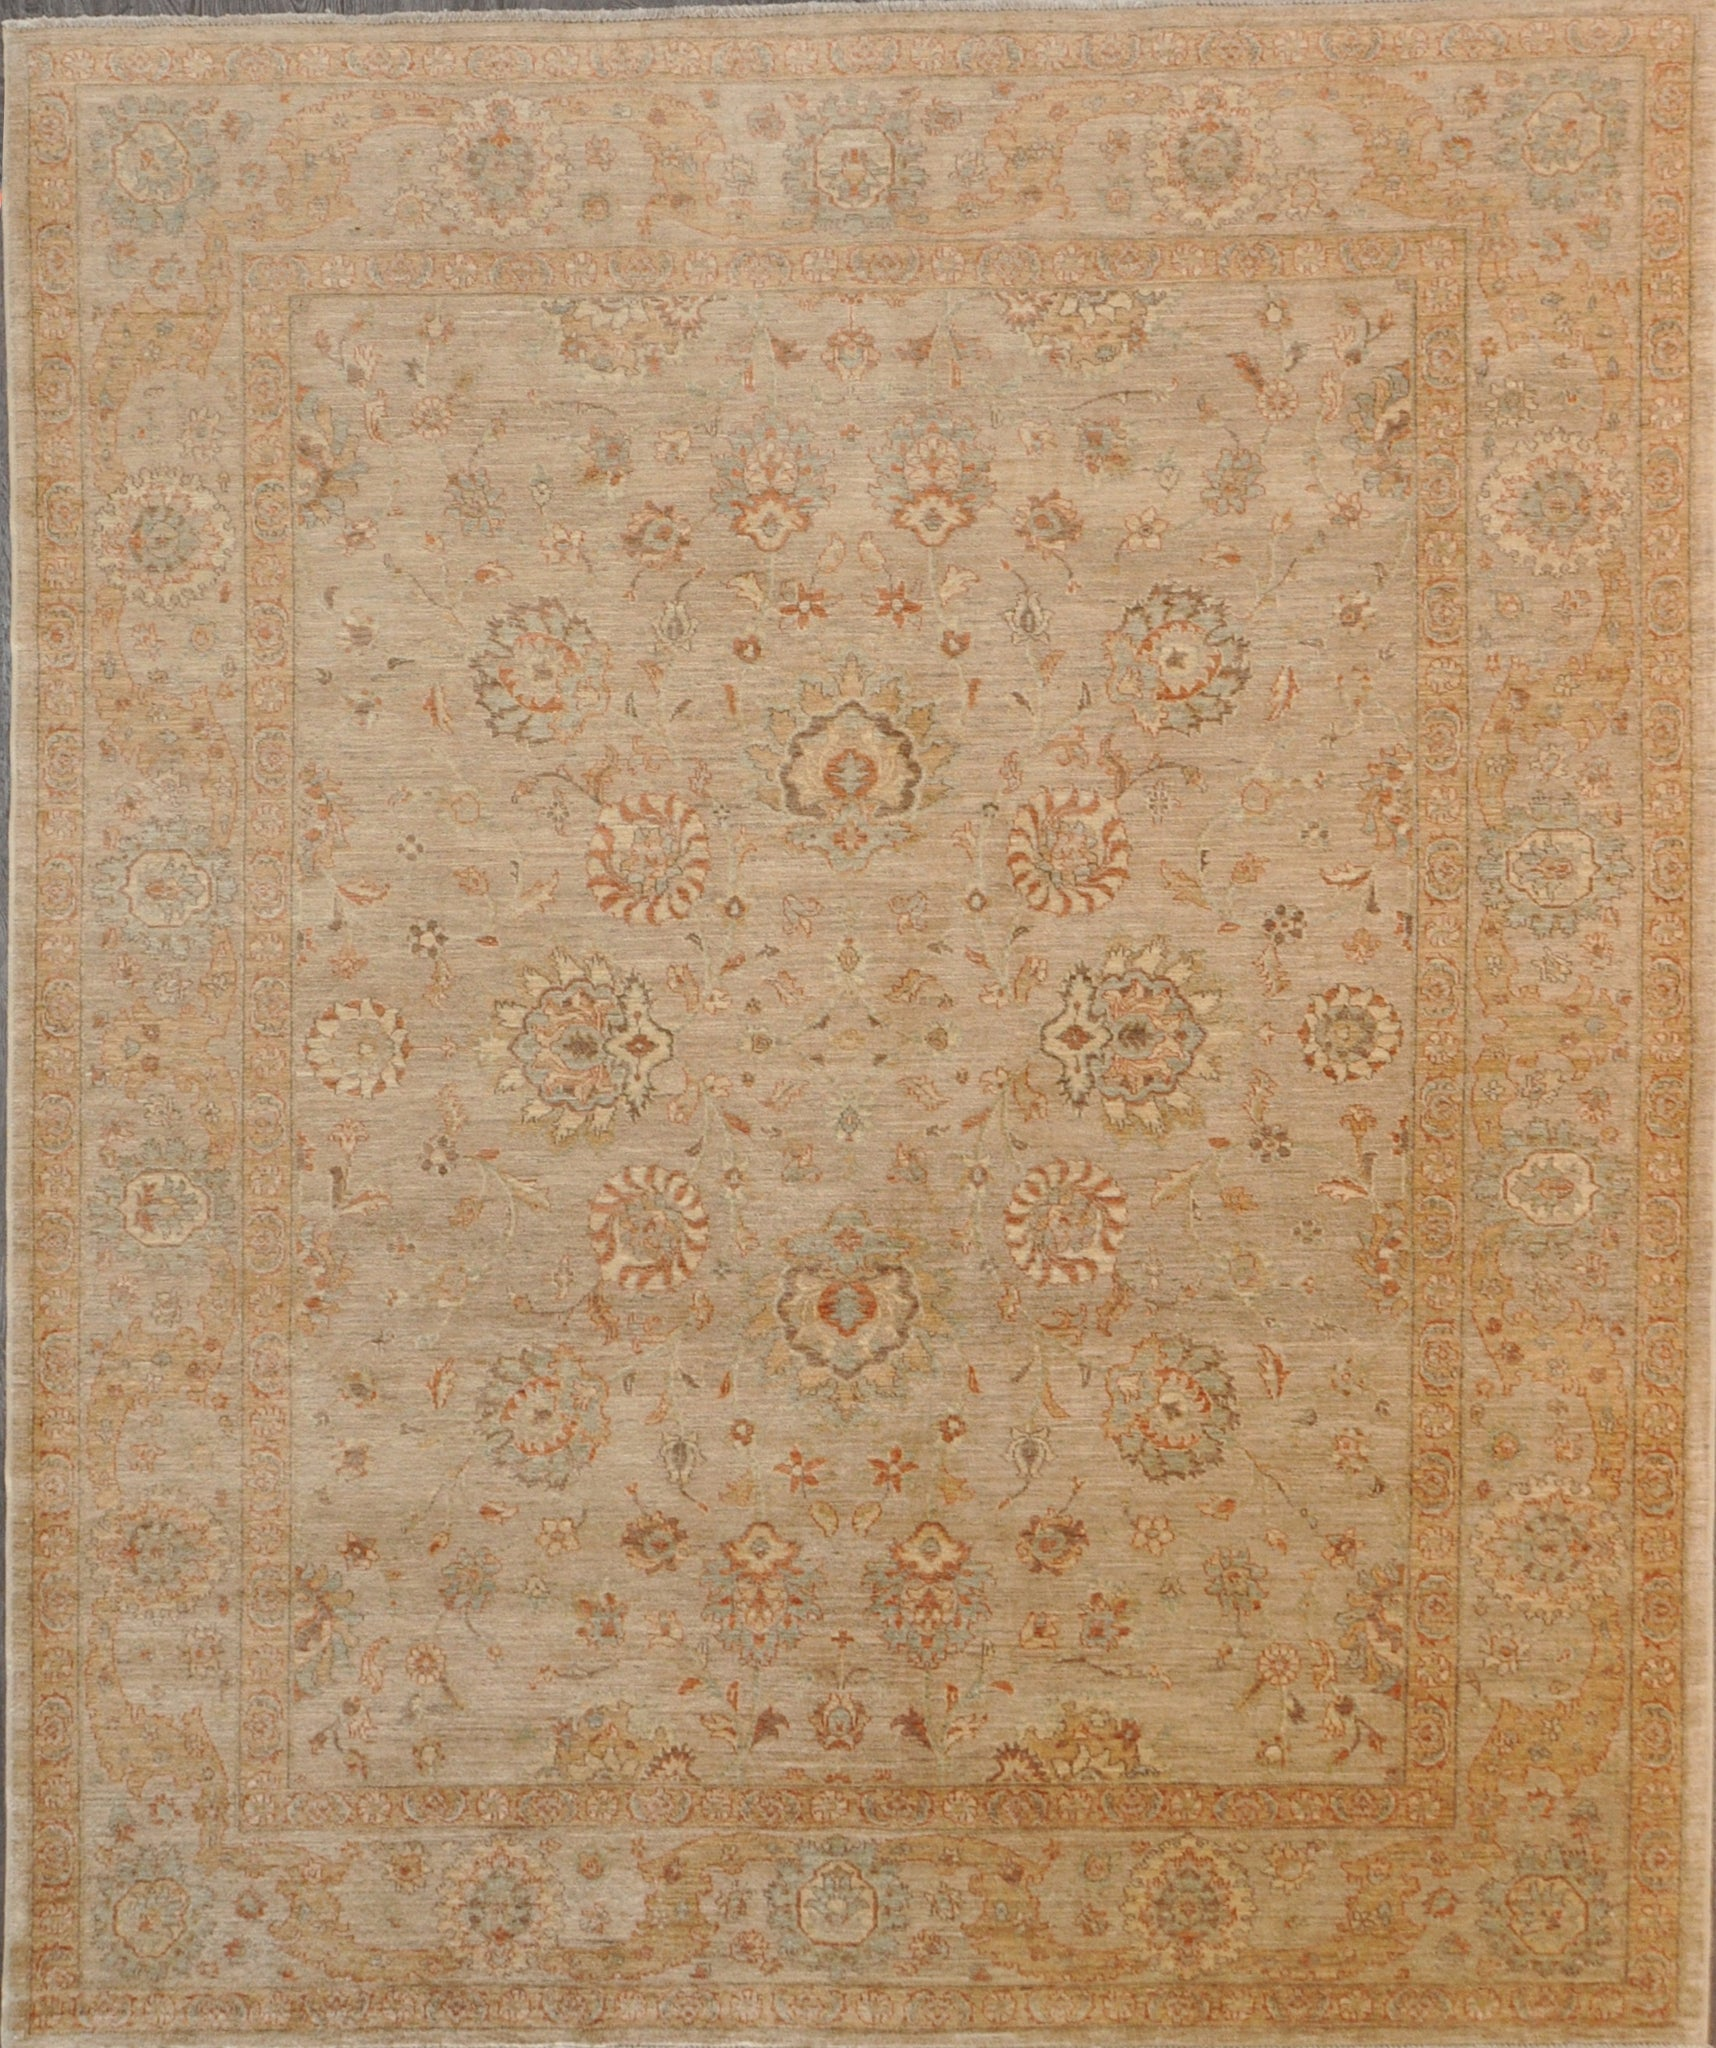 8.1x10.0 persian Farahan antique rec allover #38194